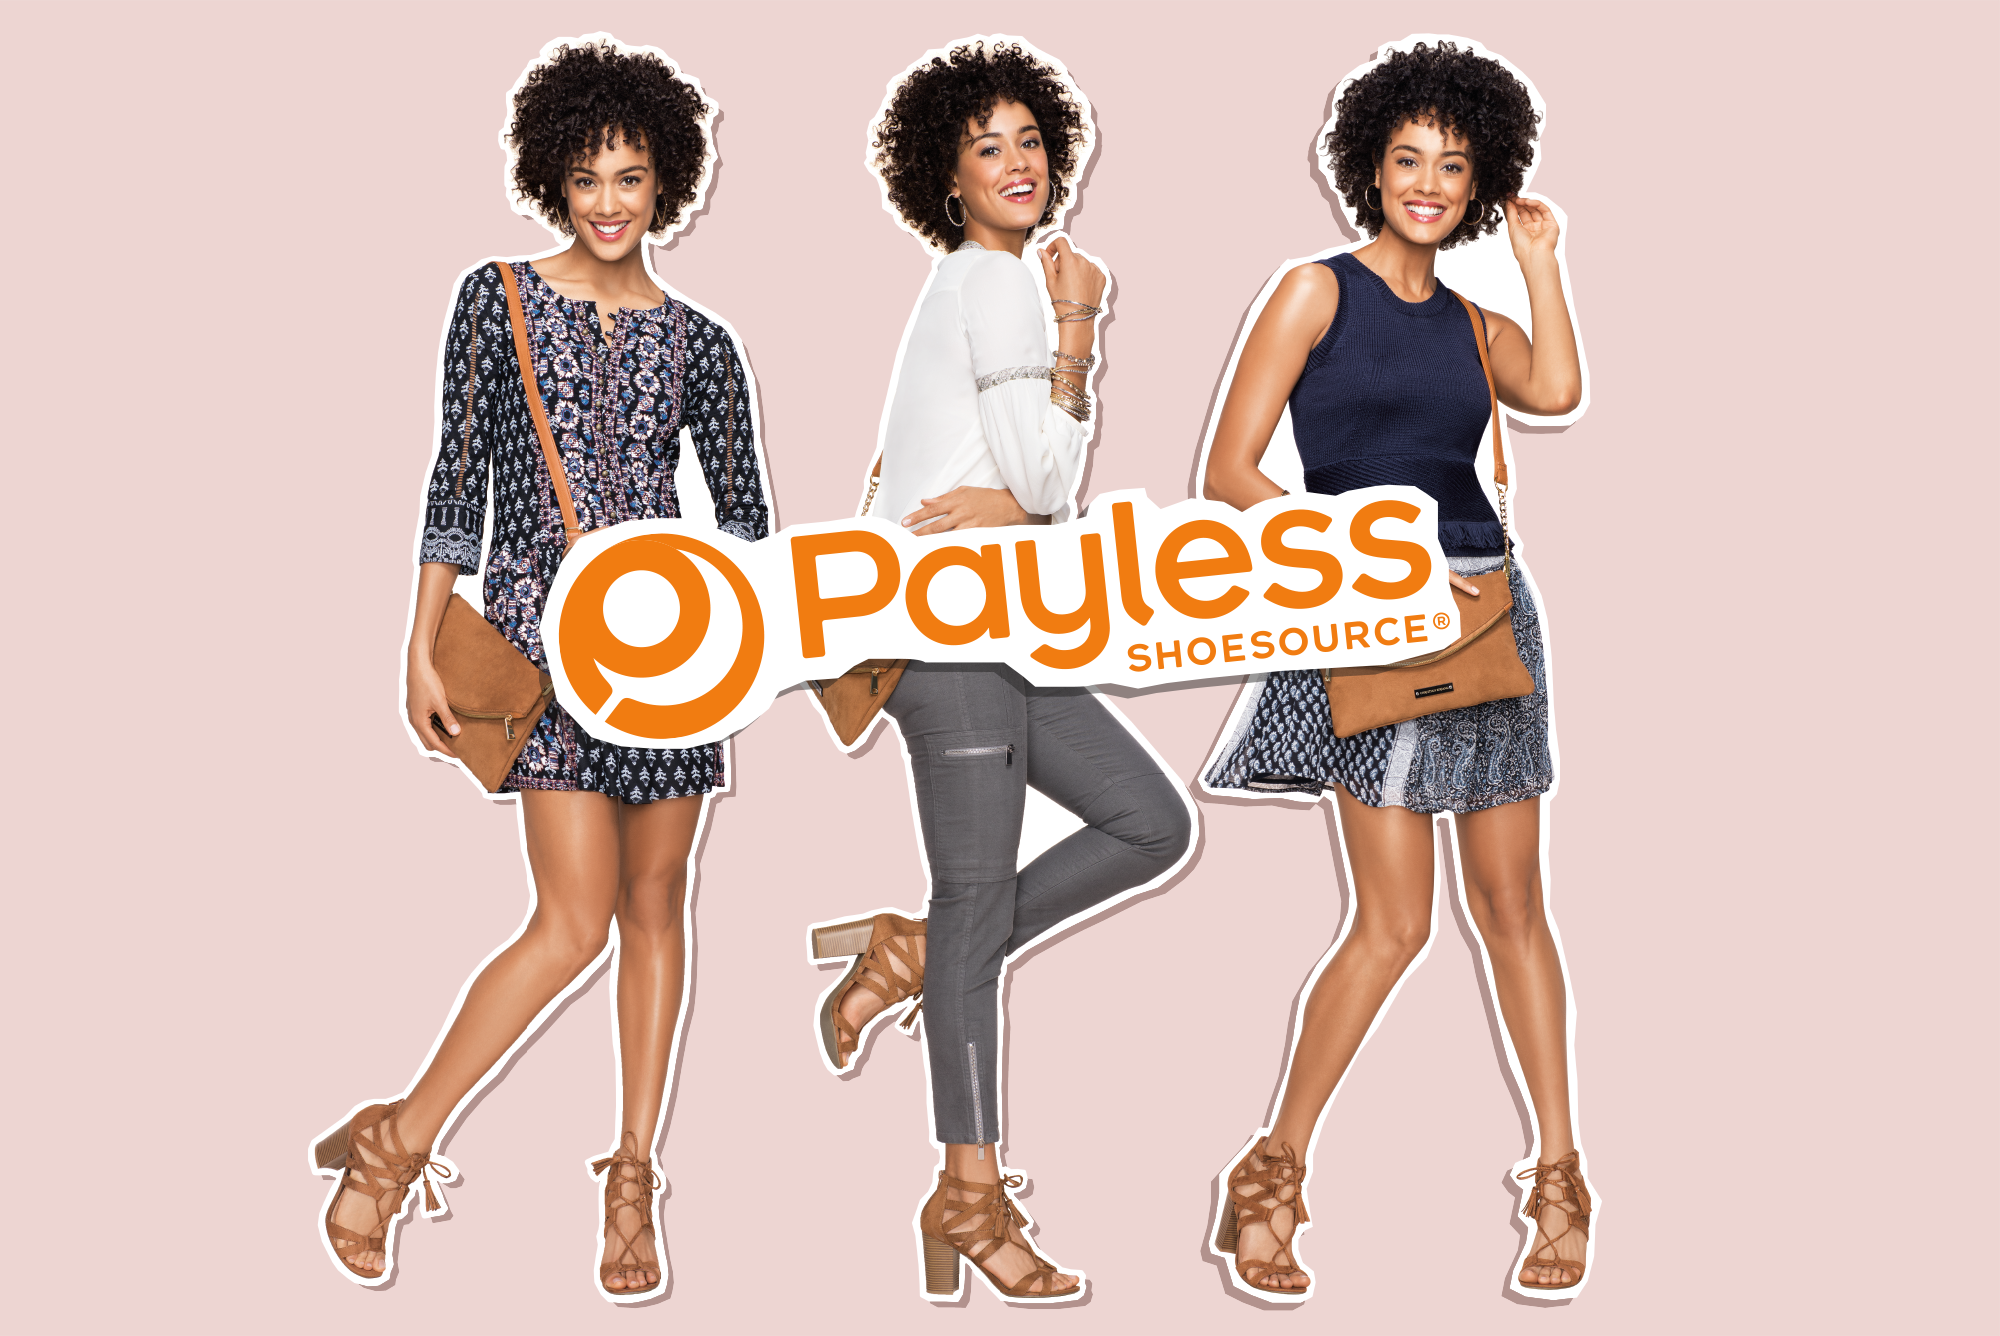 payless-header.png